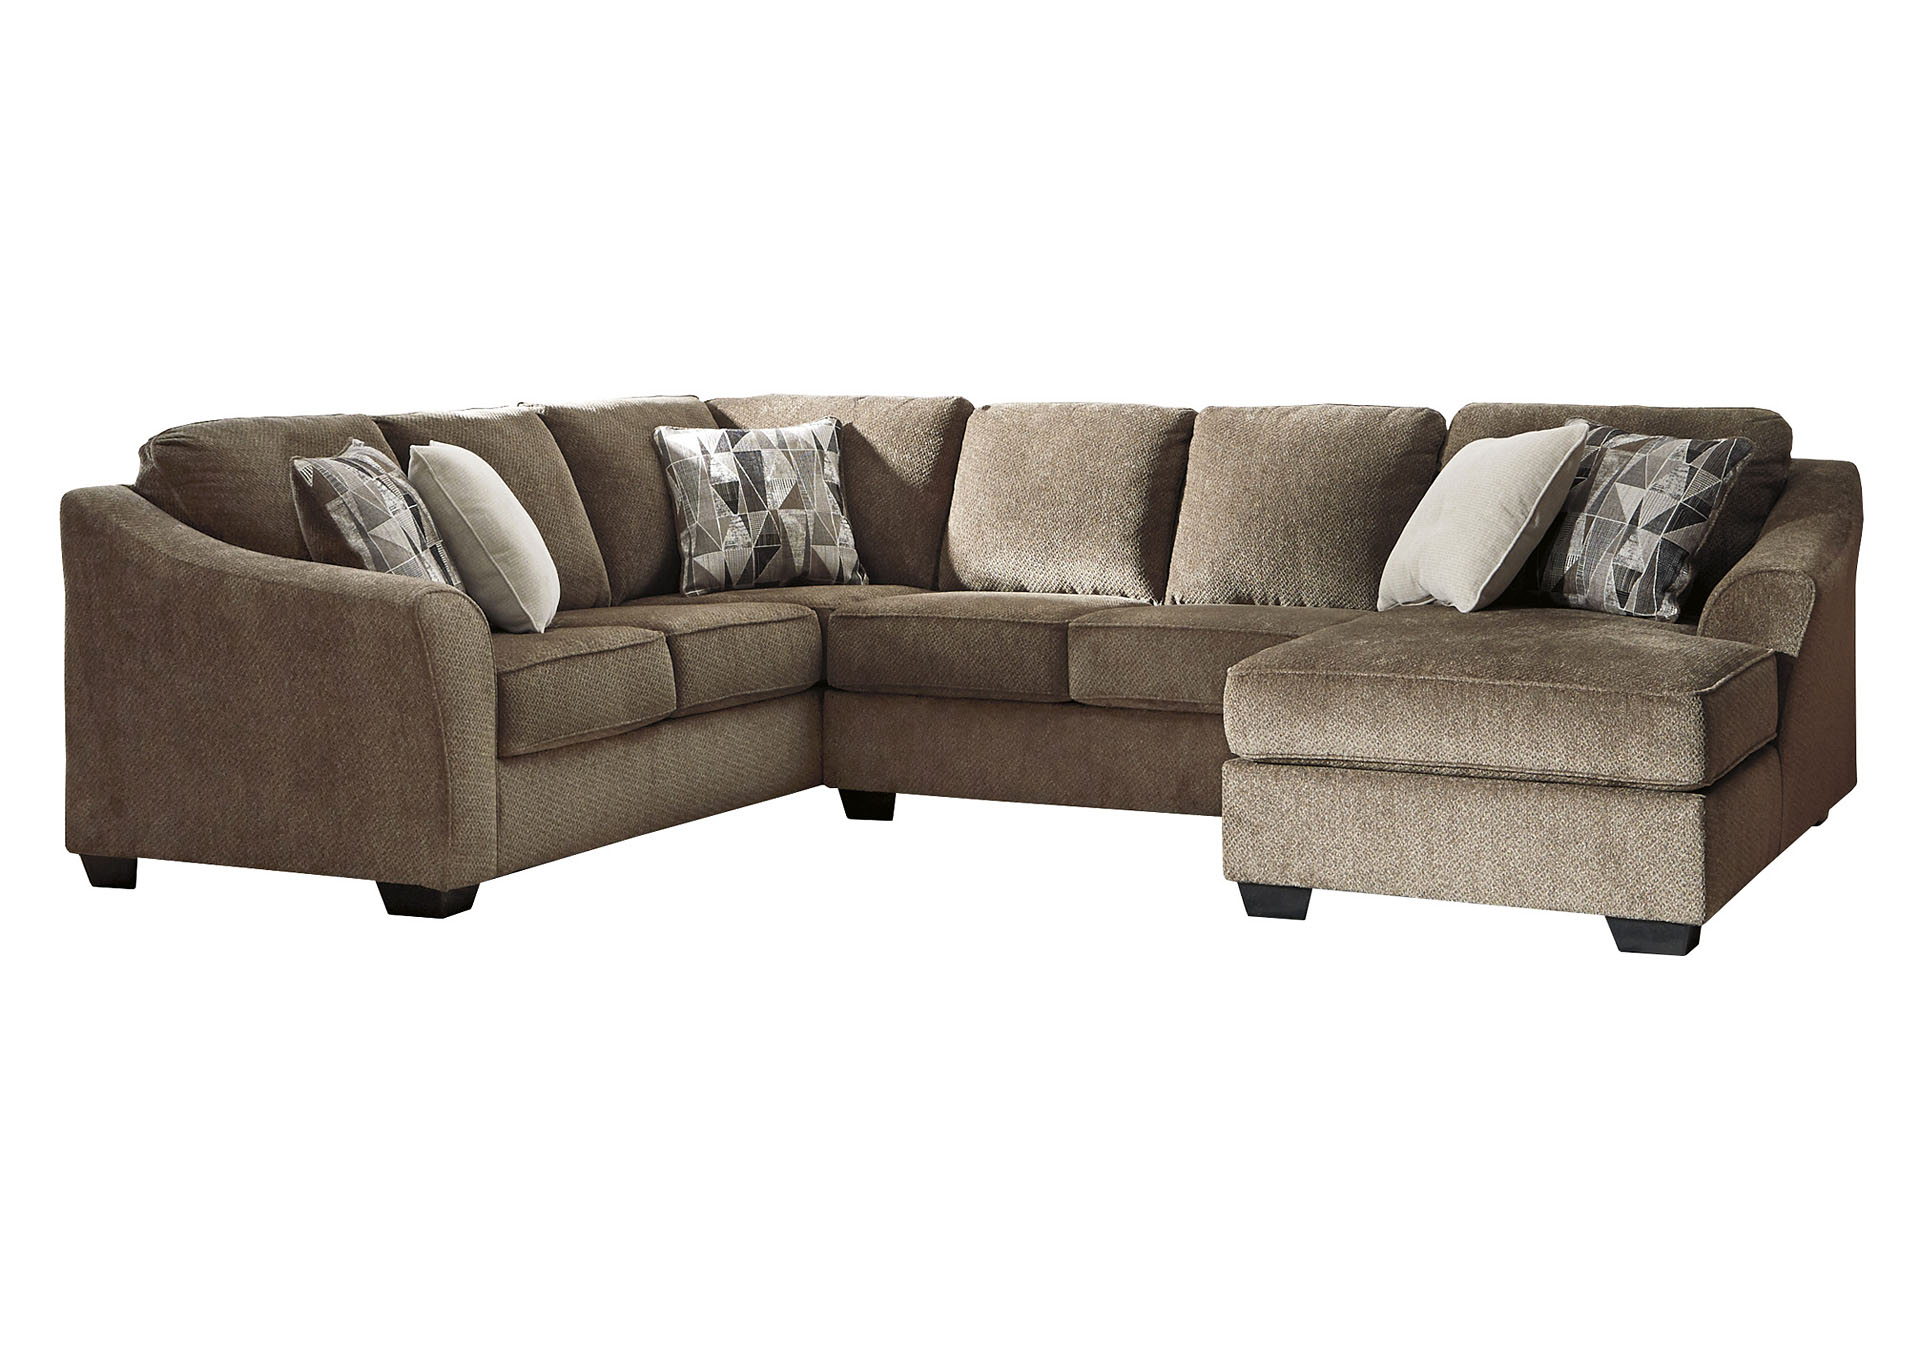 Graftin Teak Chaise Sectional Ashley Furniture Homestore Independently Owned And Operated By Best Furn Appliances I